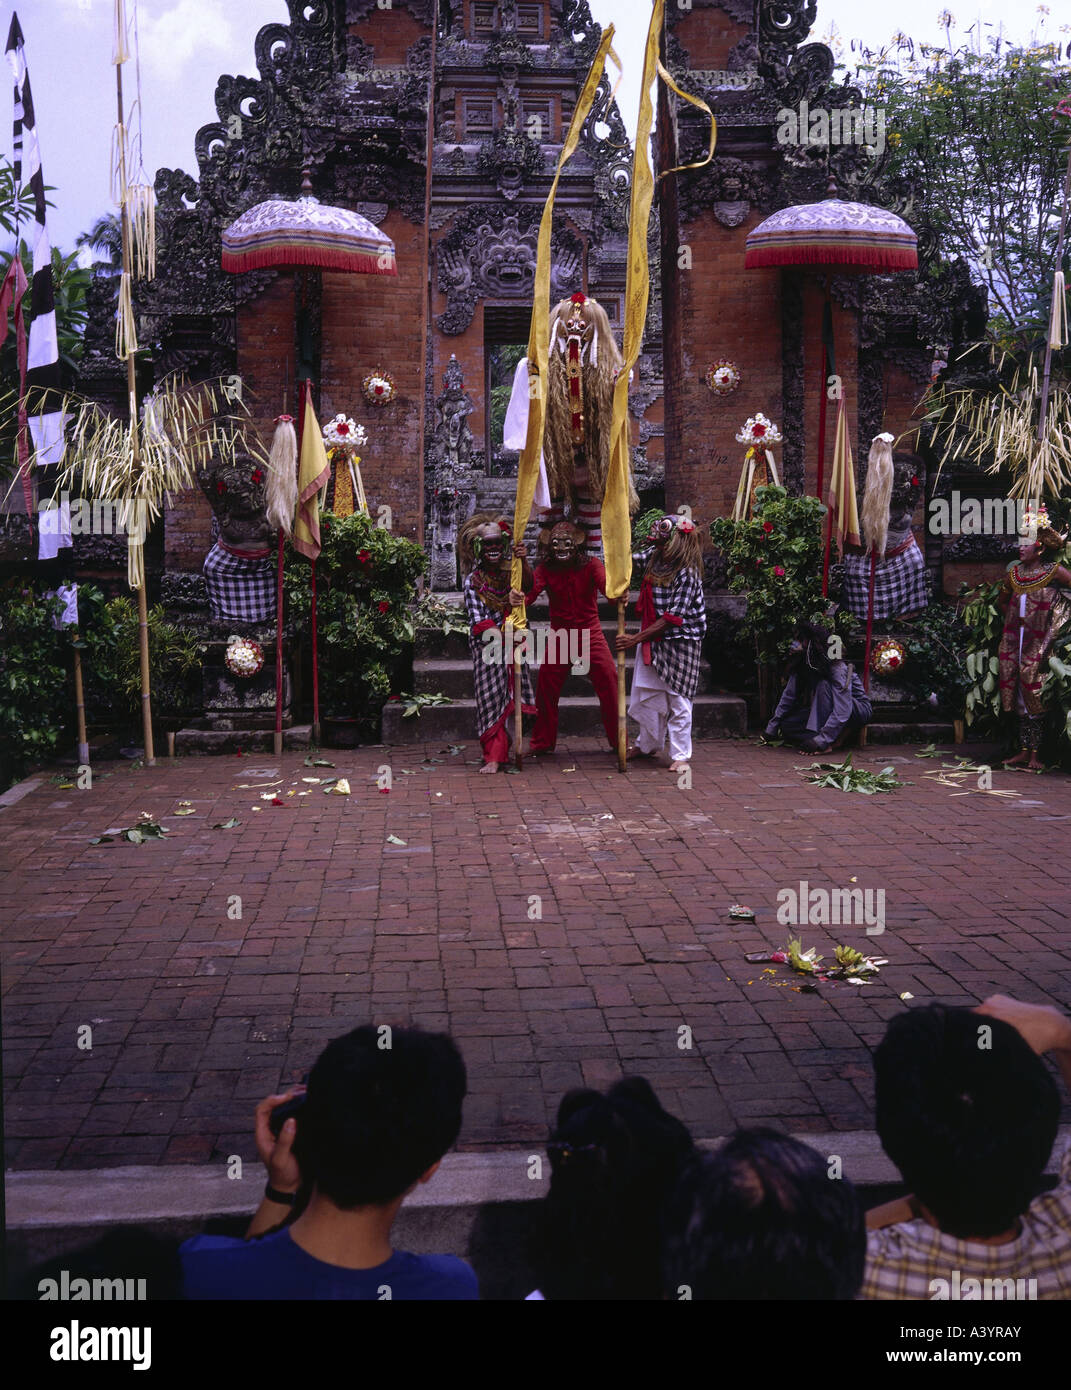 travel /geography, Indonesia, Bali, tradition / folklore, Barong dance, appearance of Rangda, South East Asia, mythology, - Stock Image